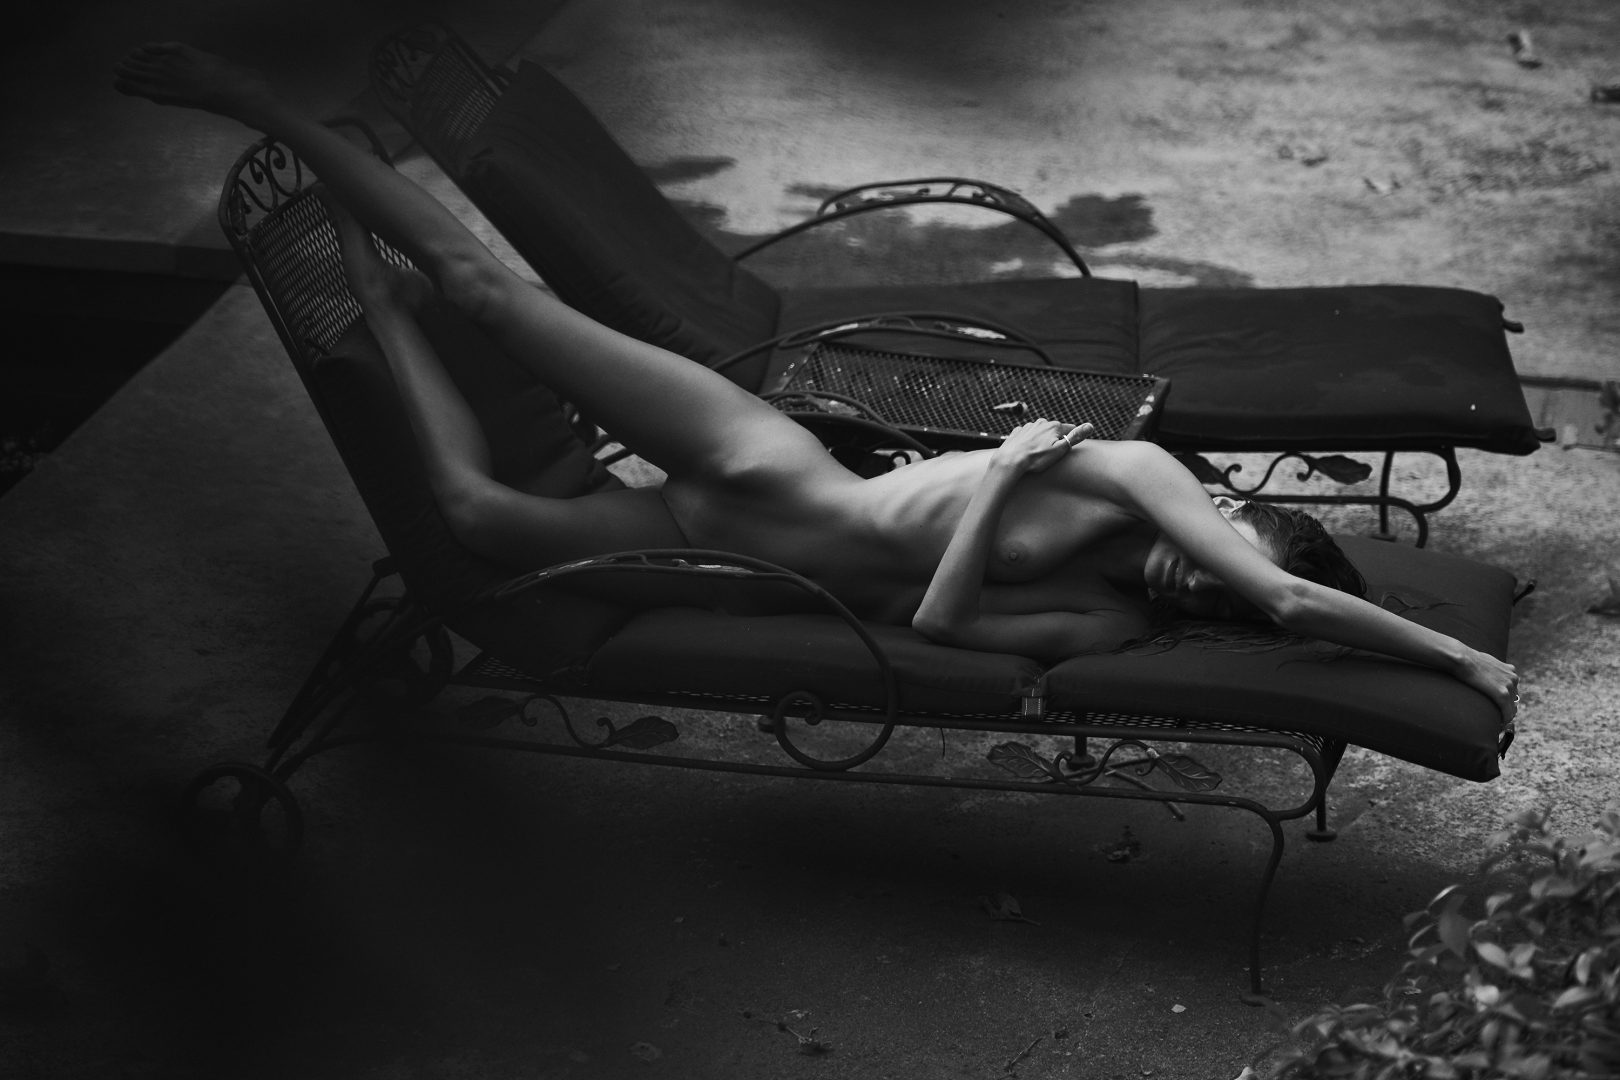 Naked girl poolside by stefan rappo